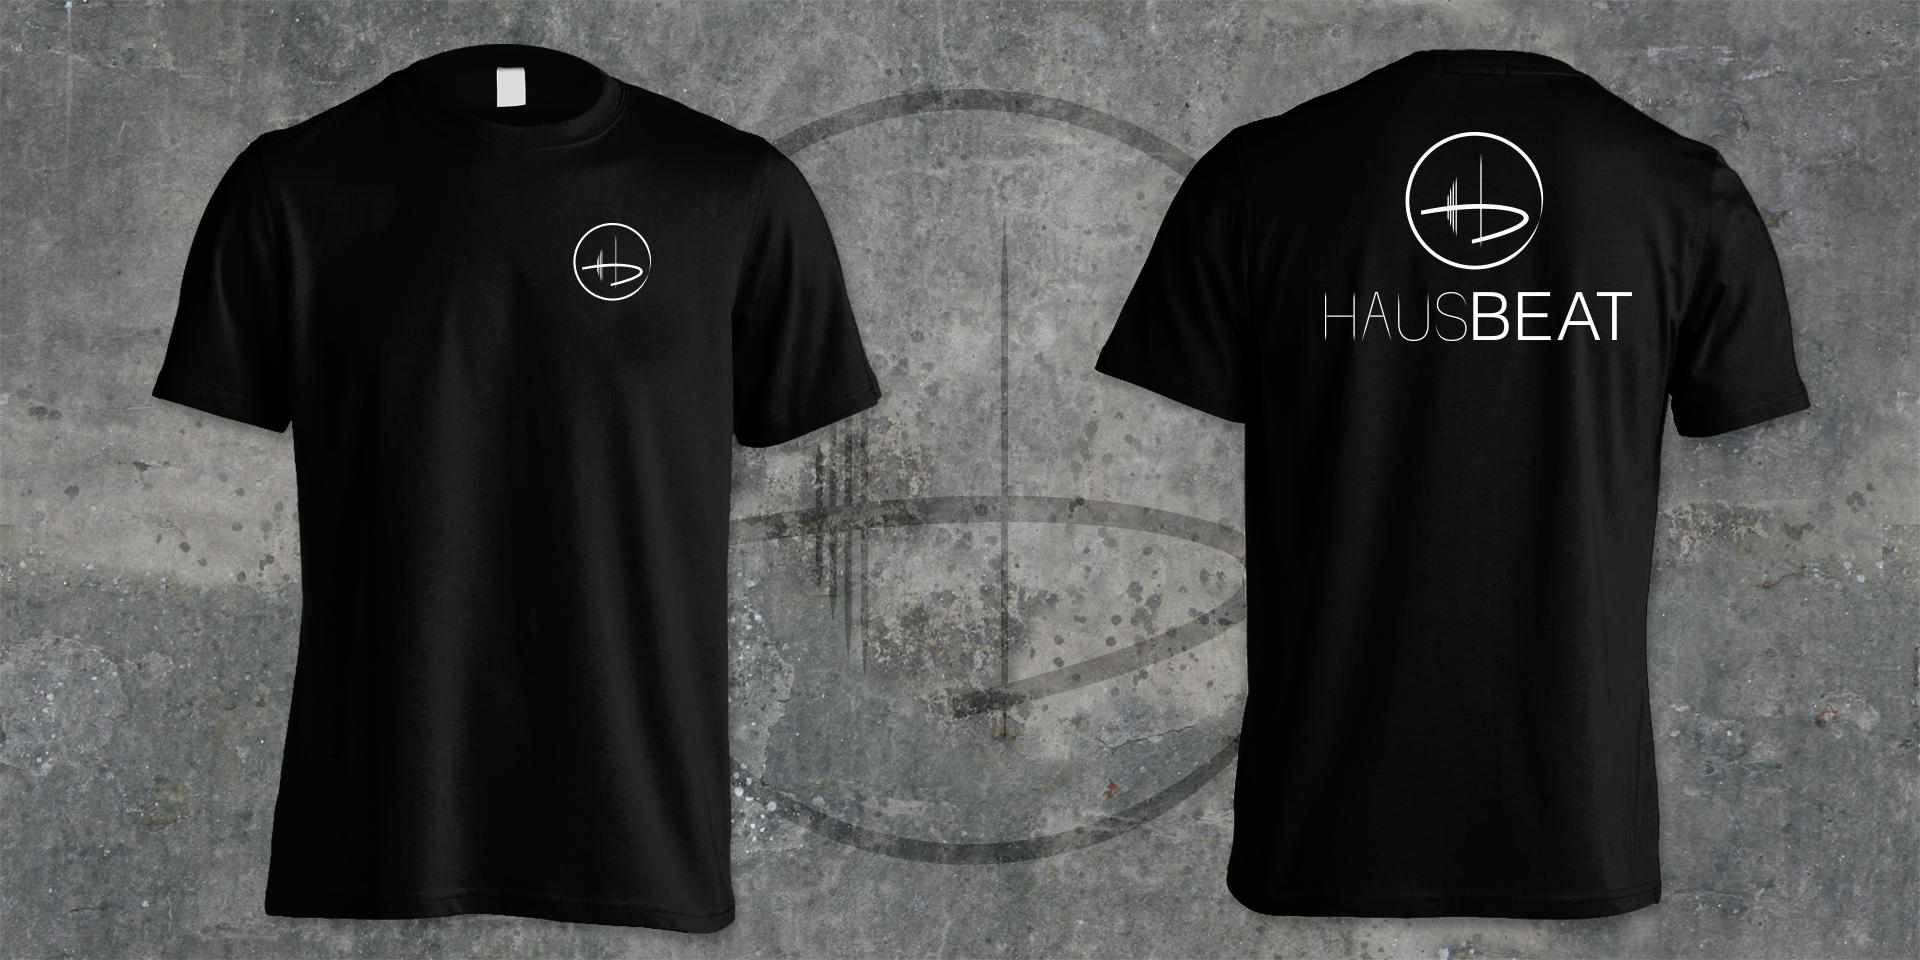 hauseat-tshirt-by-funky-b